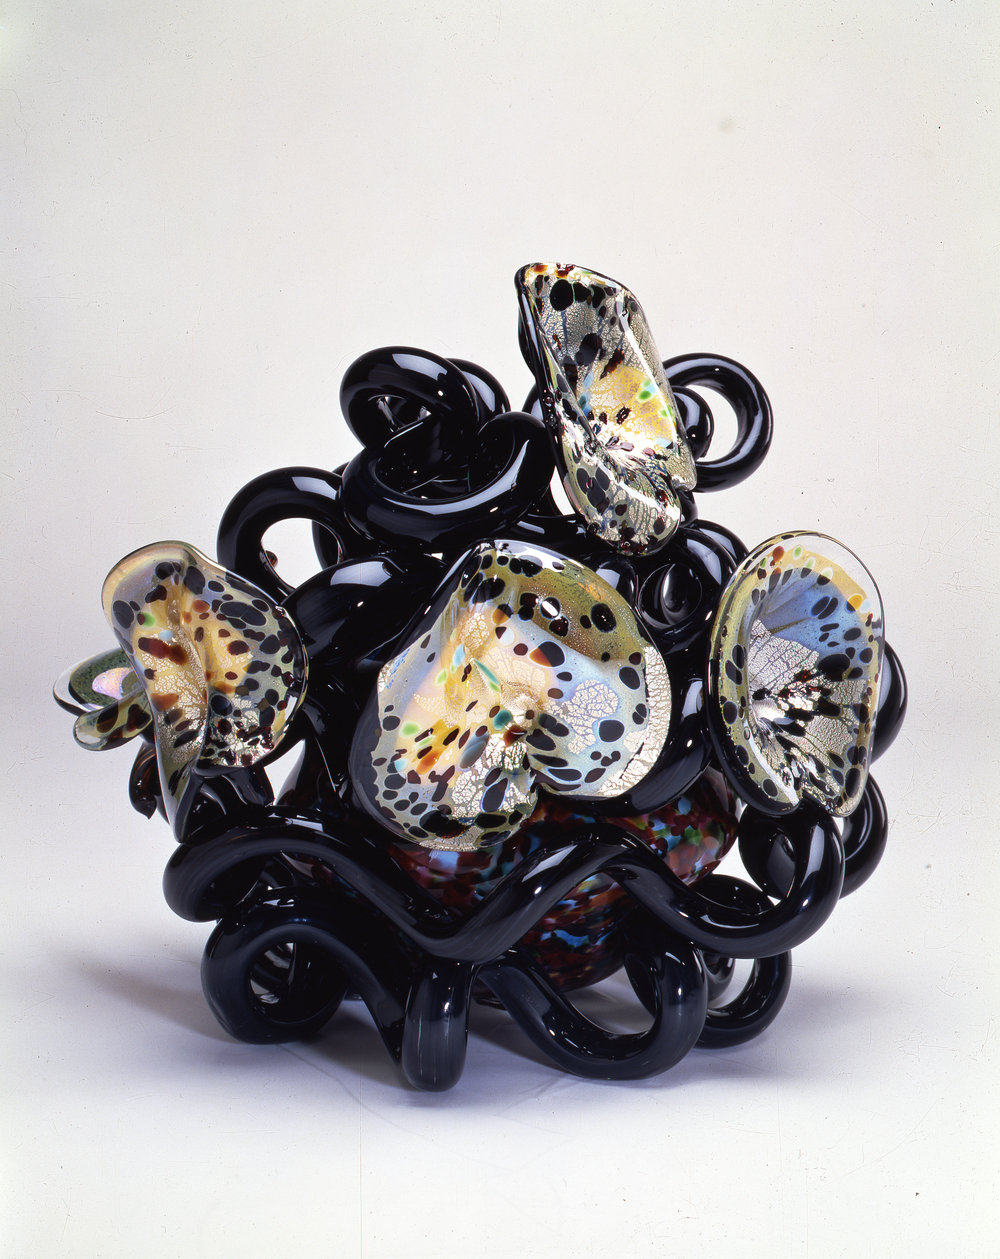 Dale Chihuly,  Black Coiled Venetian with Lilies  (1991, glass, 18 x 21 x 18 inches)